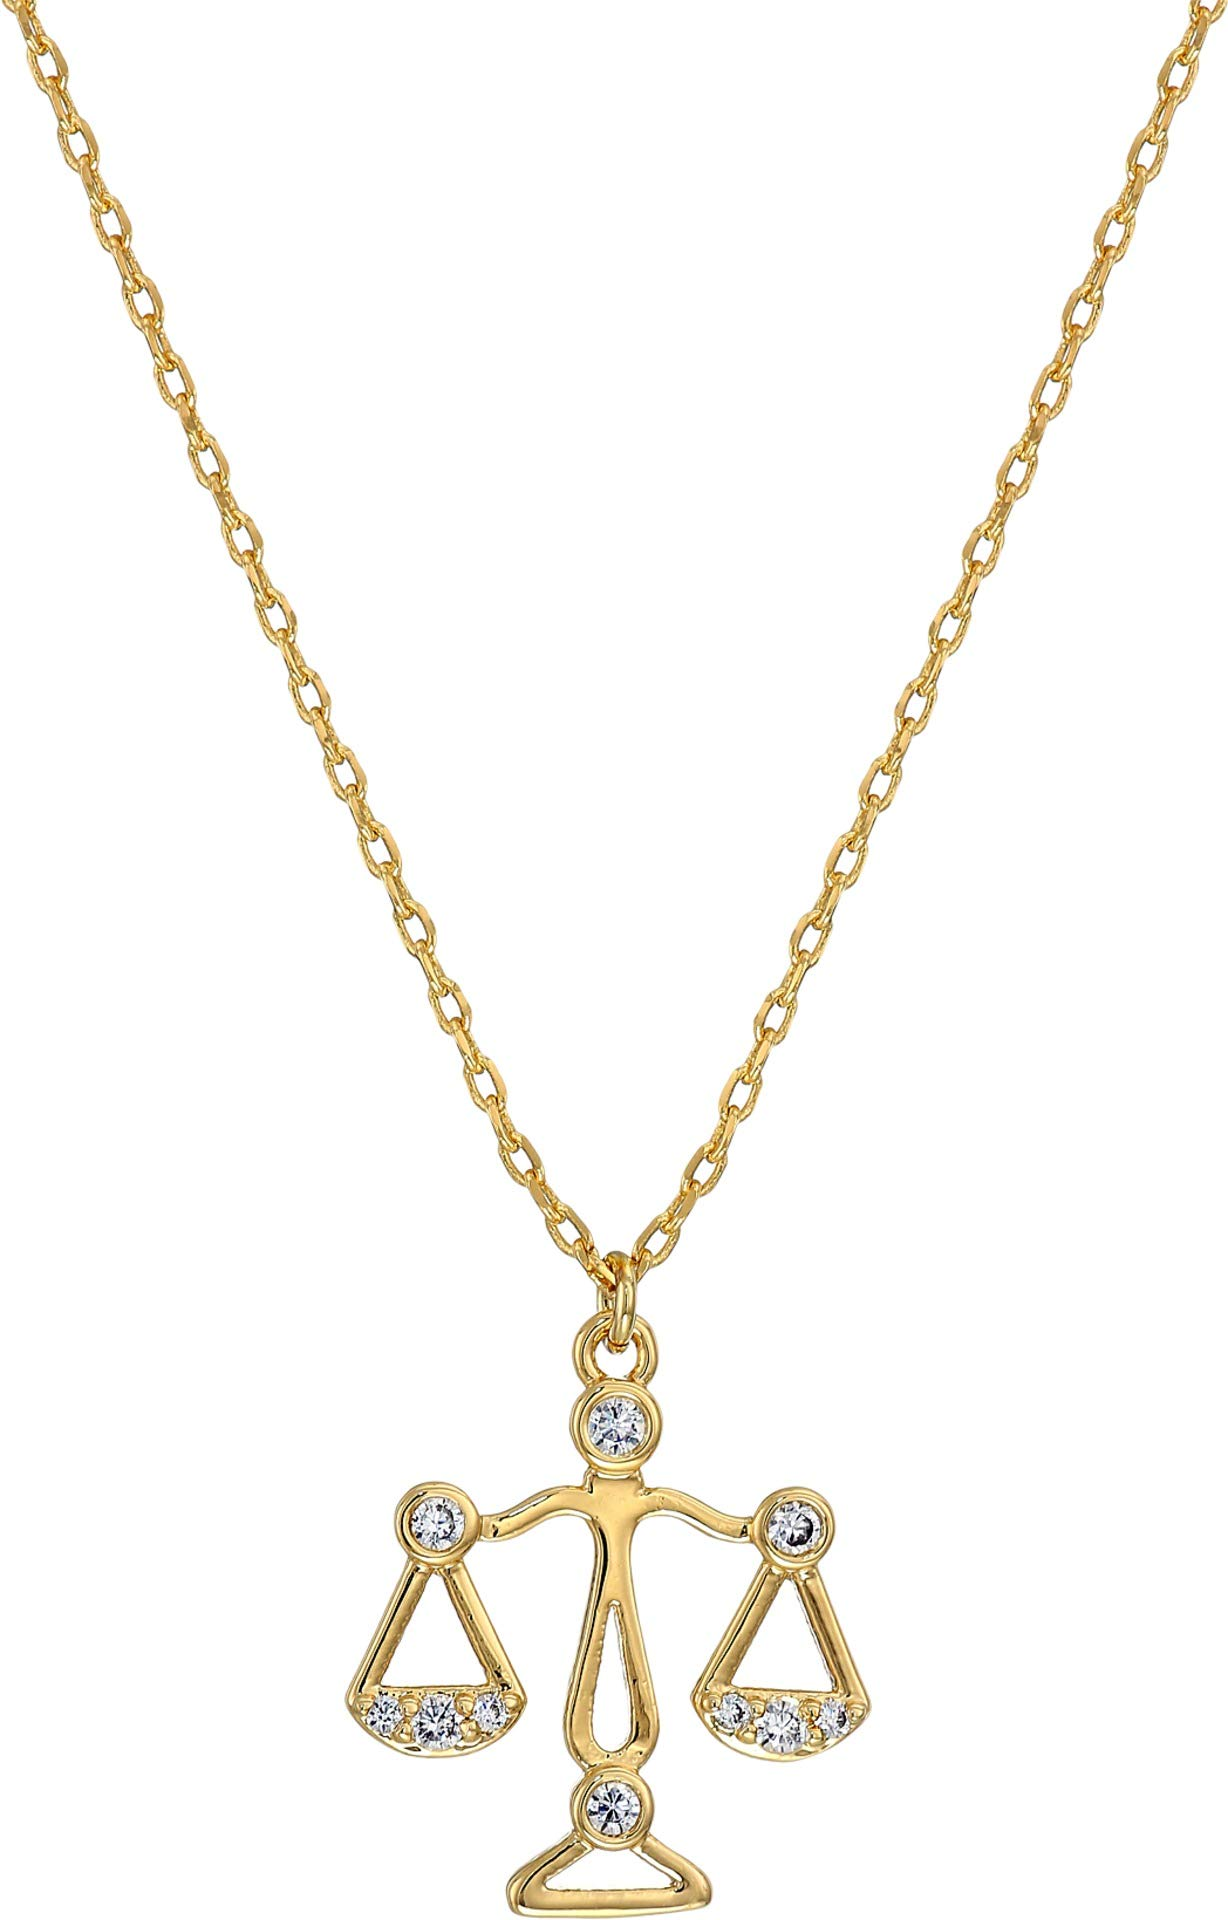 Kate Spade New York Women's Celestial Charm Libra Pendant Necklace Clear/Gold One Size